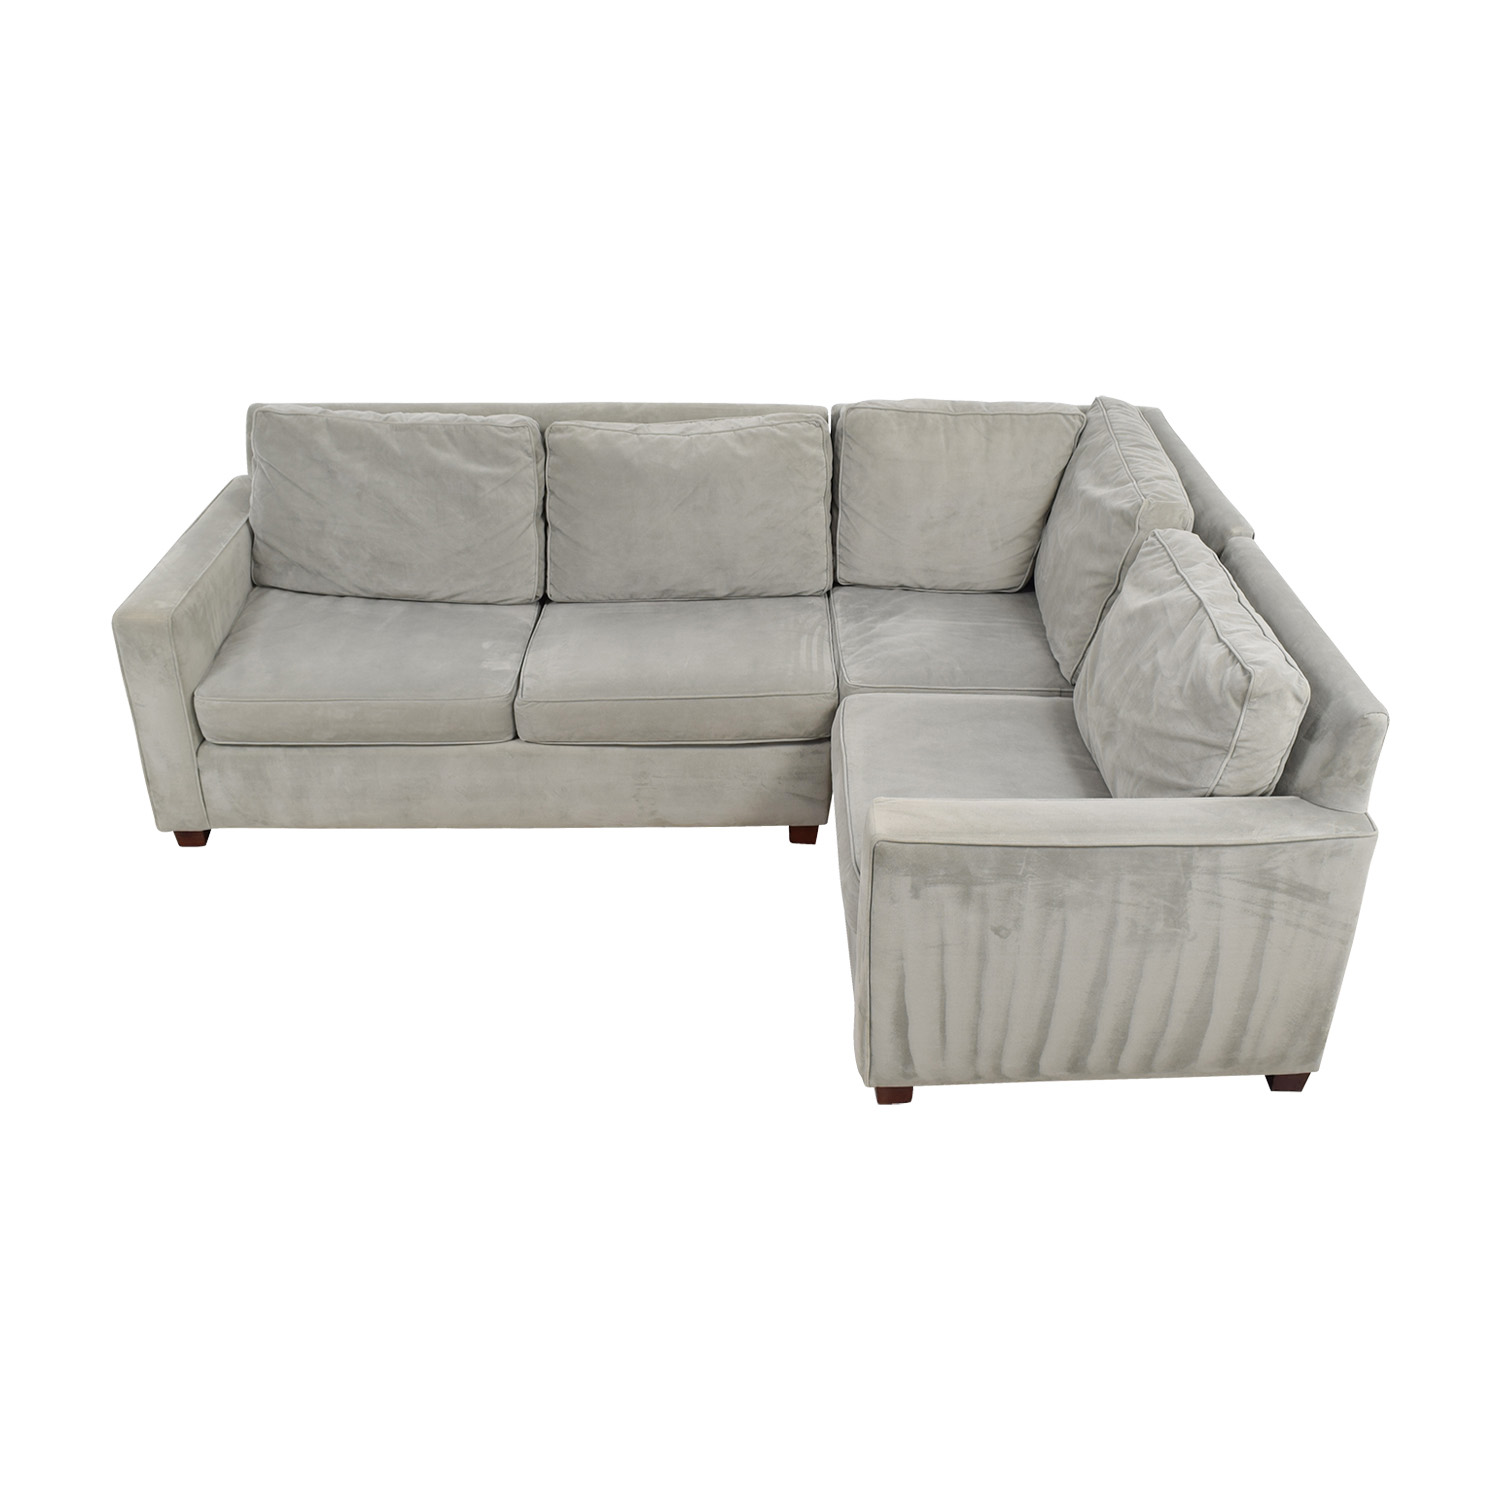 West Elm West Elm Henry Velvet Stone Sectional for sale